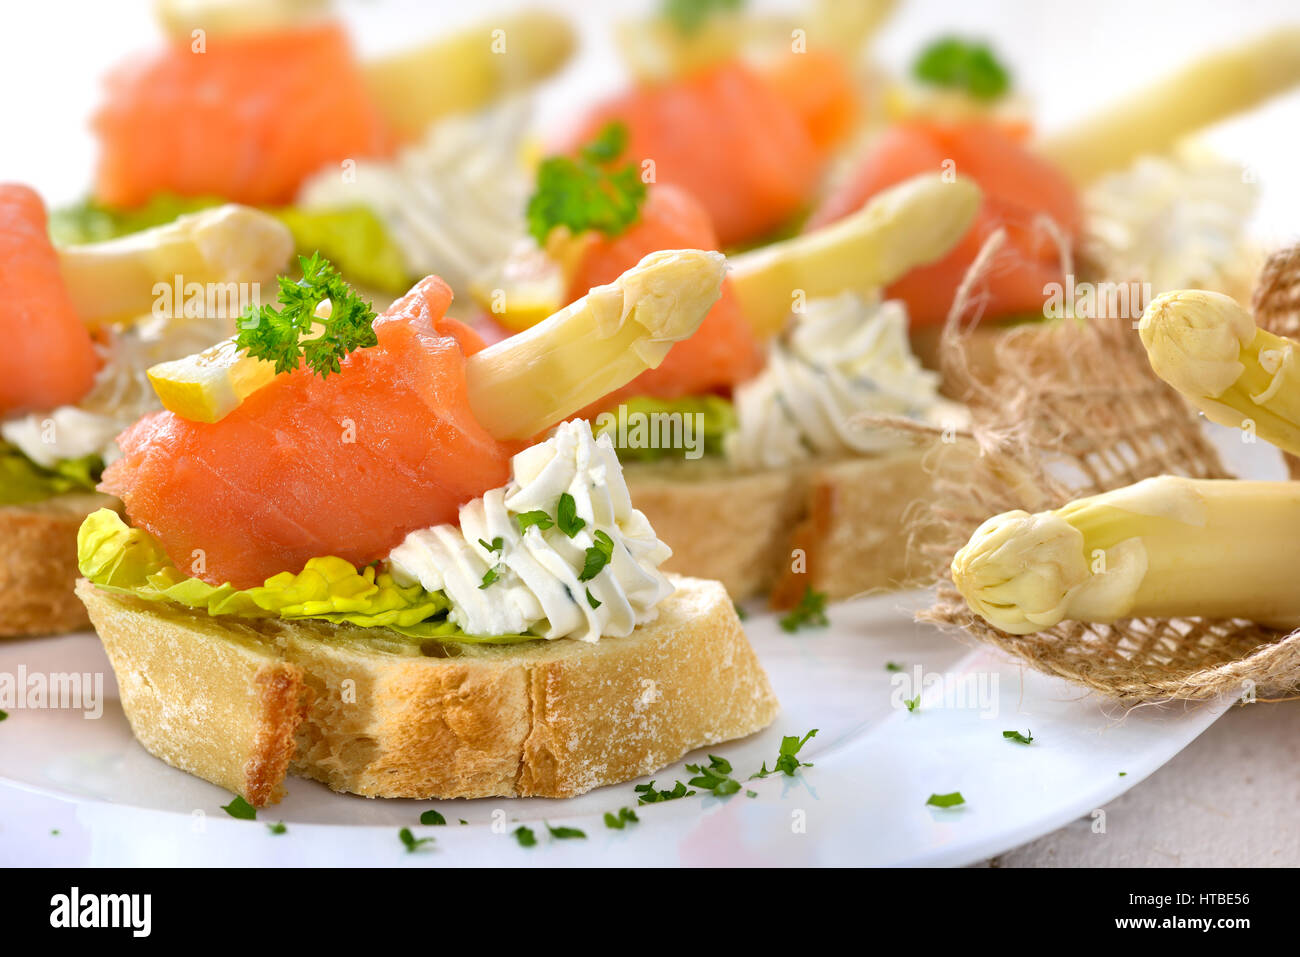 Delicious canapes with German white asparagus, cream cheese with herbs, smoked salmon on Italian ciabatta bread - Stock Image